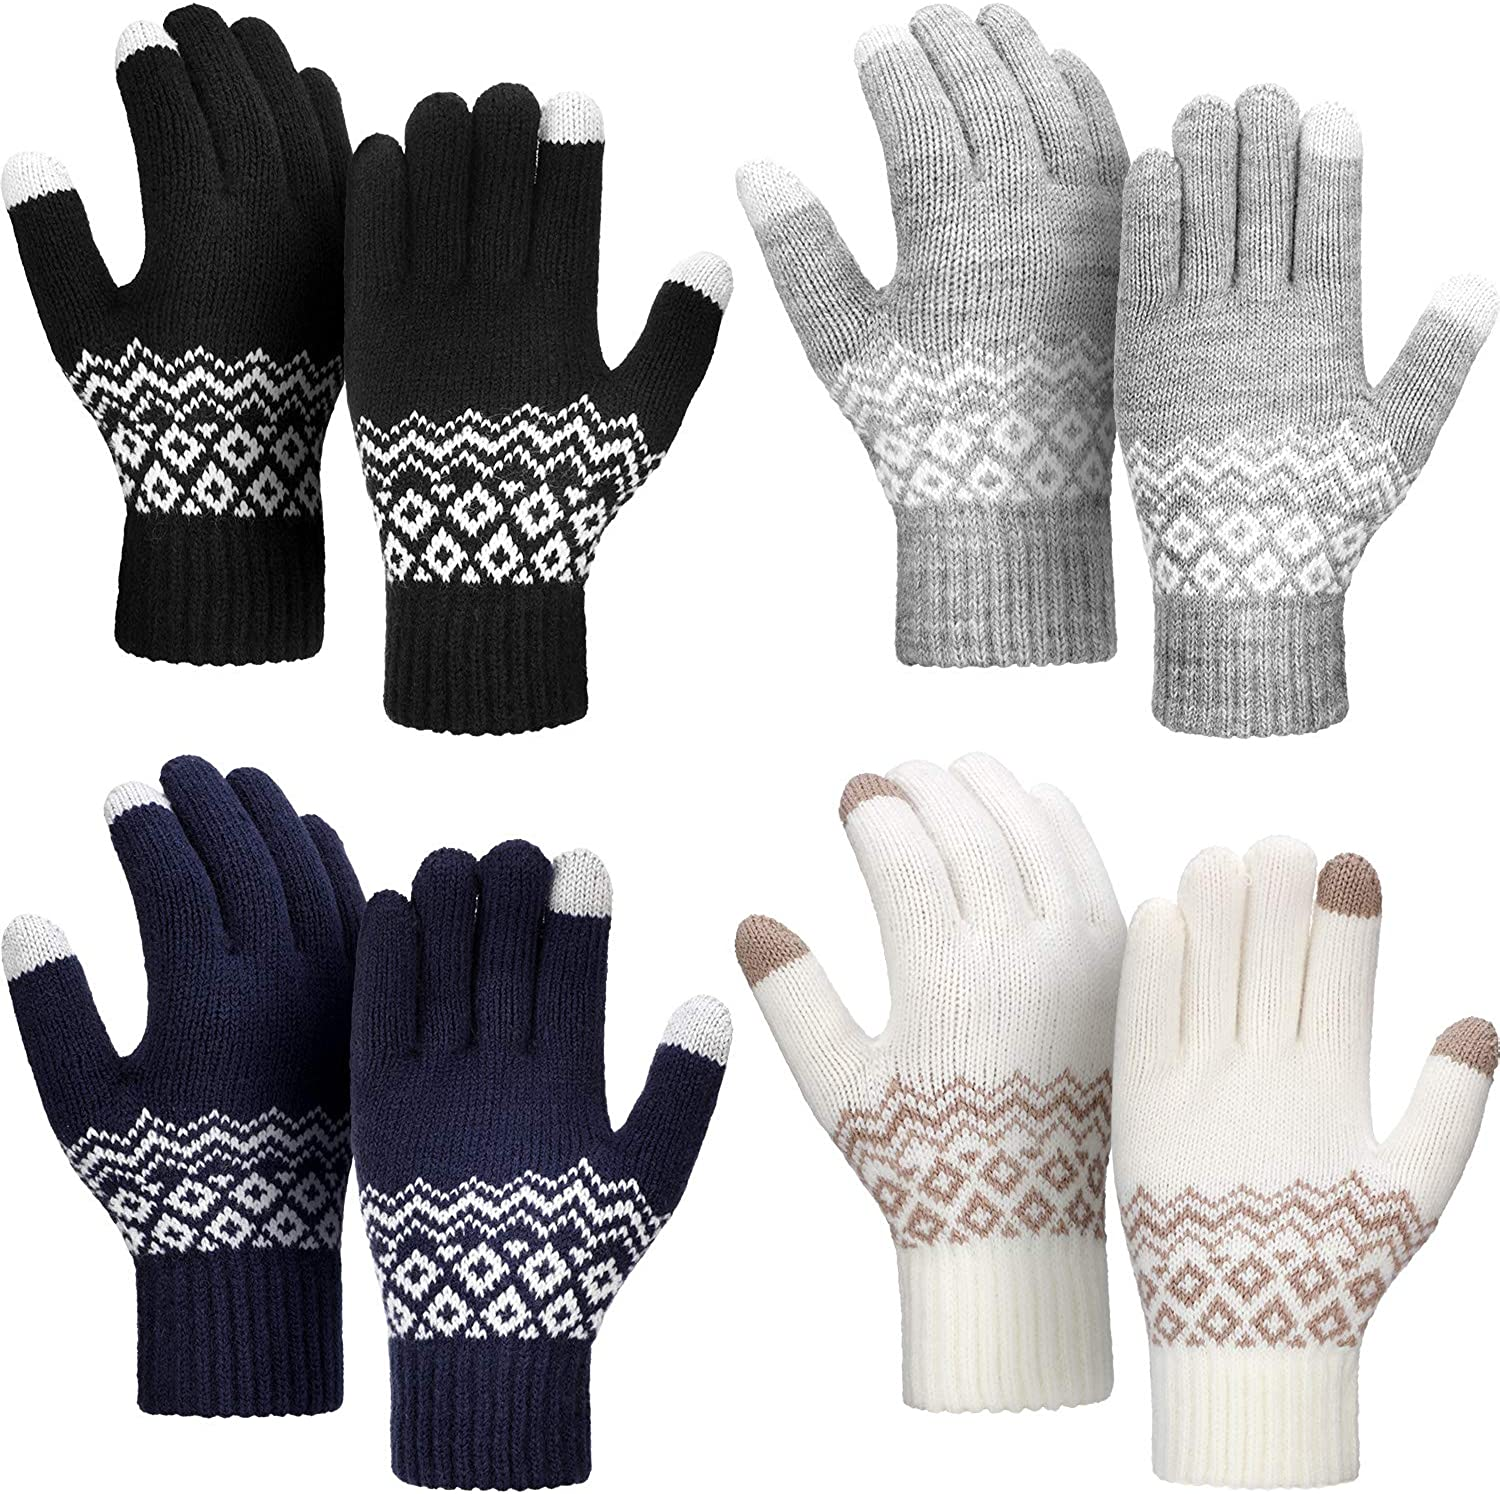 4 Pairs Winter Knit Touchscreen Gloves Windproof Anti-slip Mittens for Women Men (Style Set 1, Size 1)